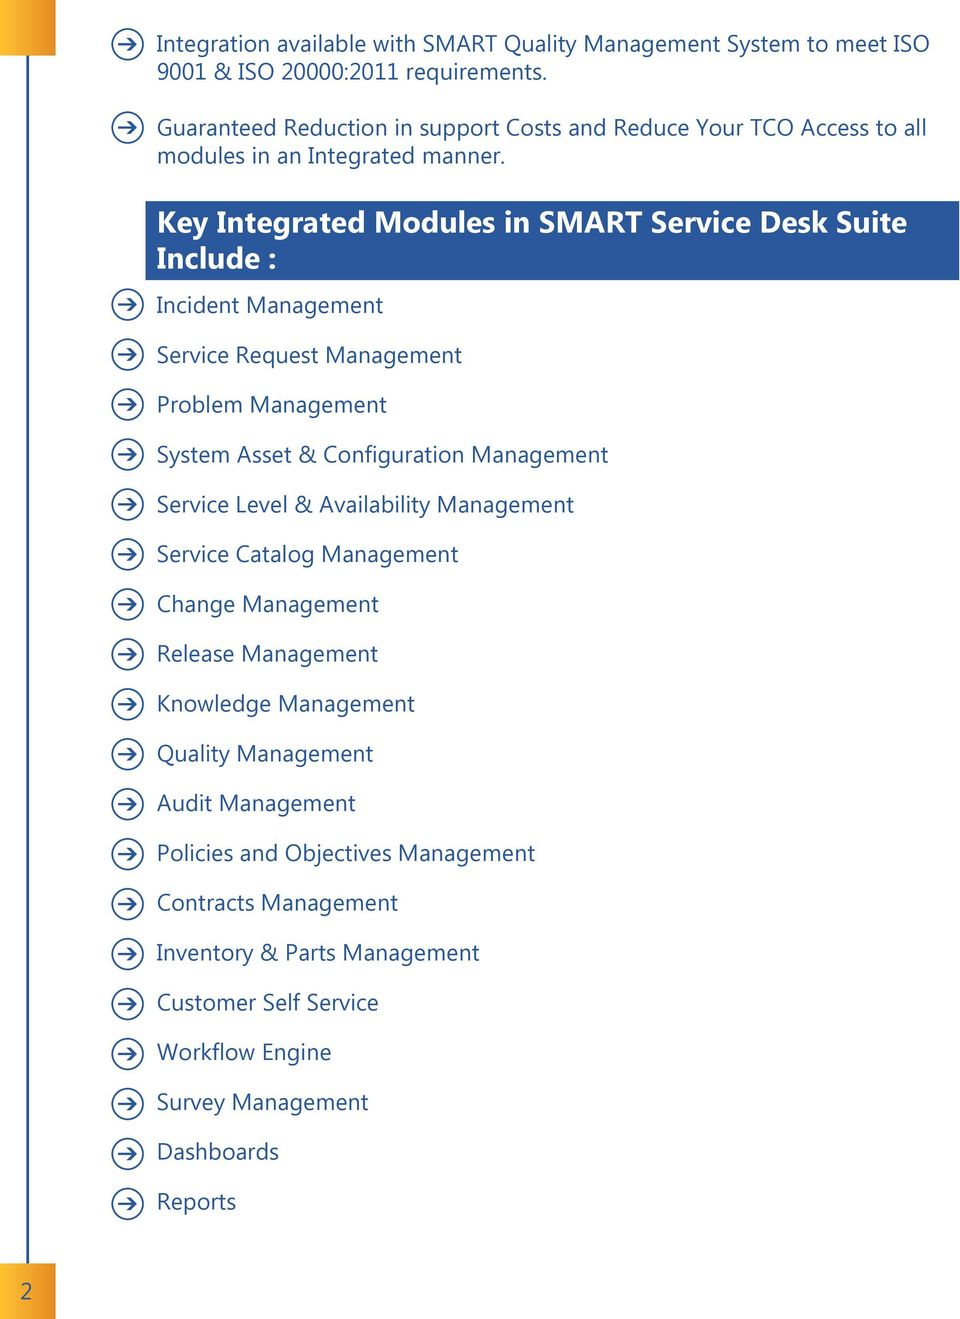 Key Integrated Modules in SMART Service Desk Suite Include : Incident Management Service Request Management Problem Management System Asset & Configuration Management Service